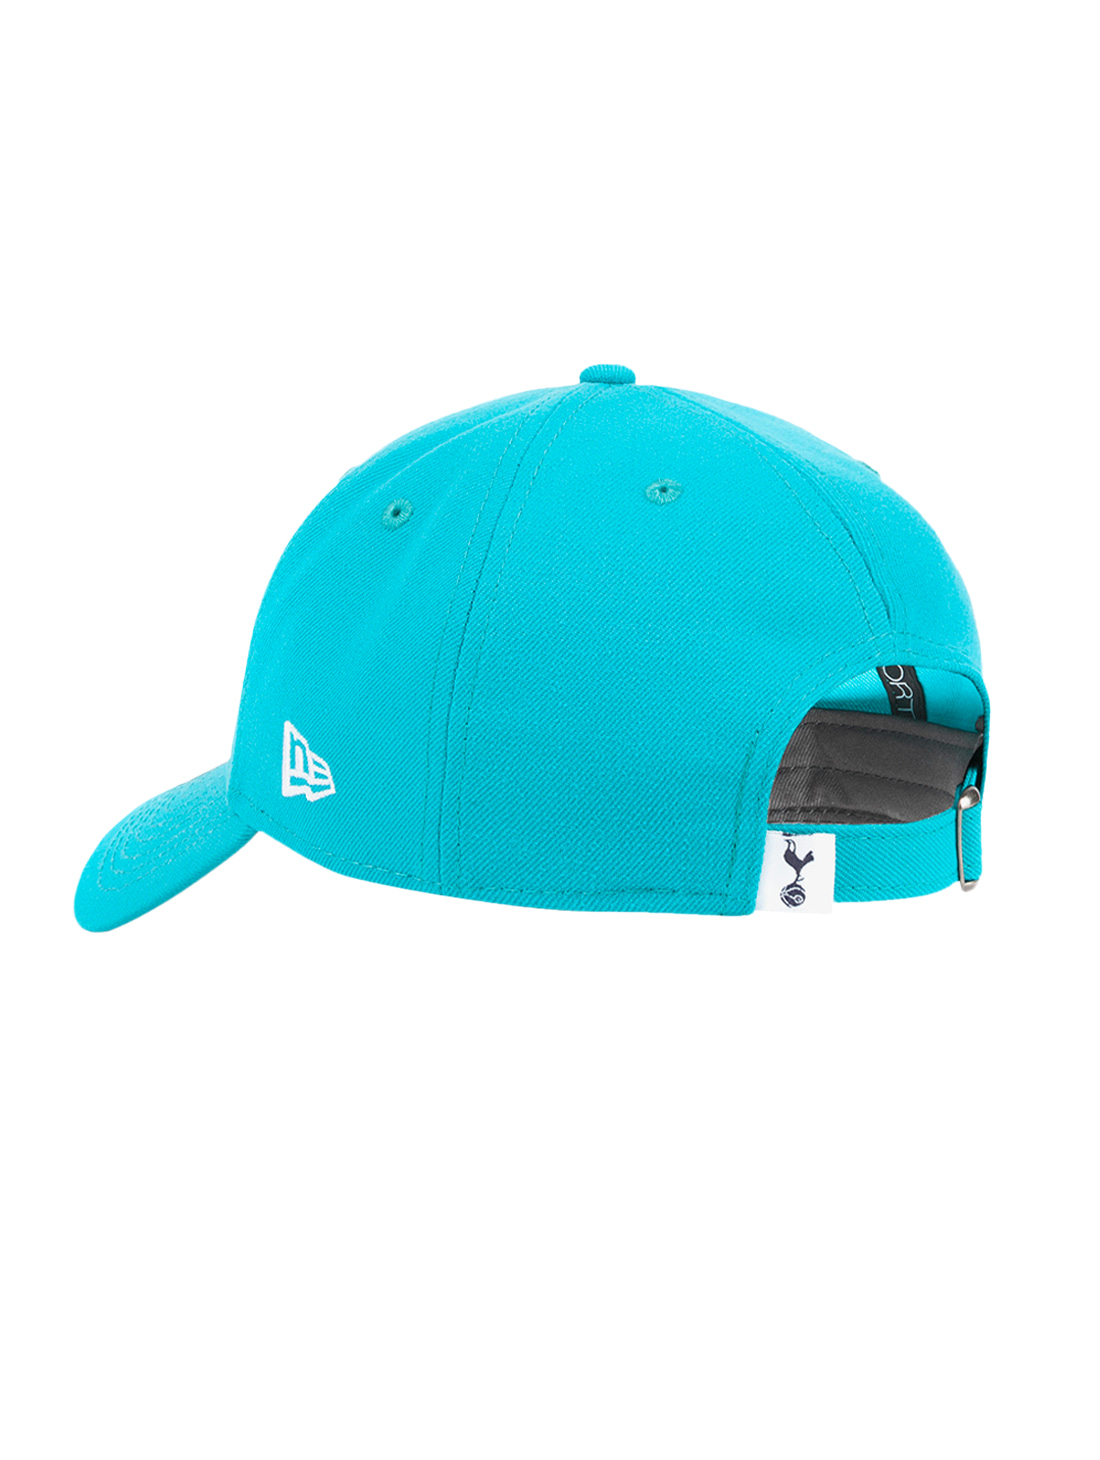 TOTTENHAM 940 BALL CAP - BLUE